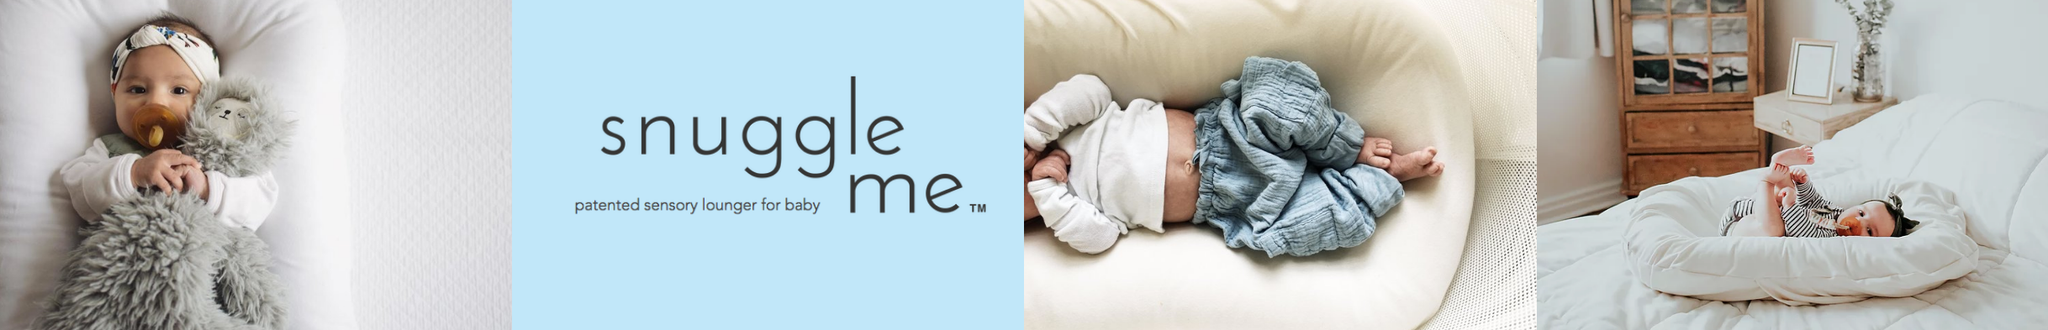 snuggle me organic infant cosleeping lounger